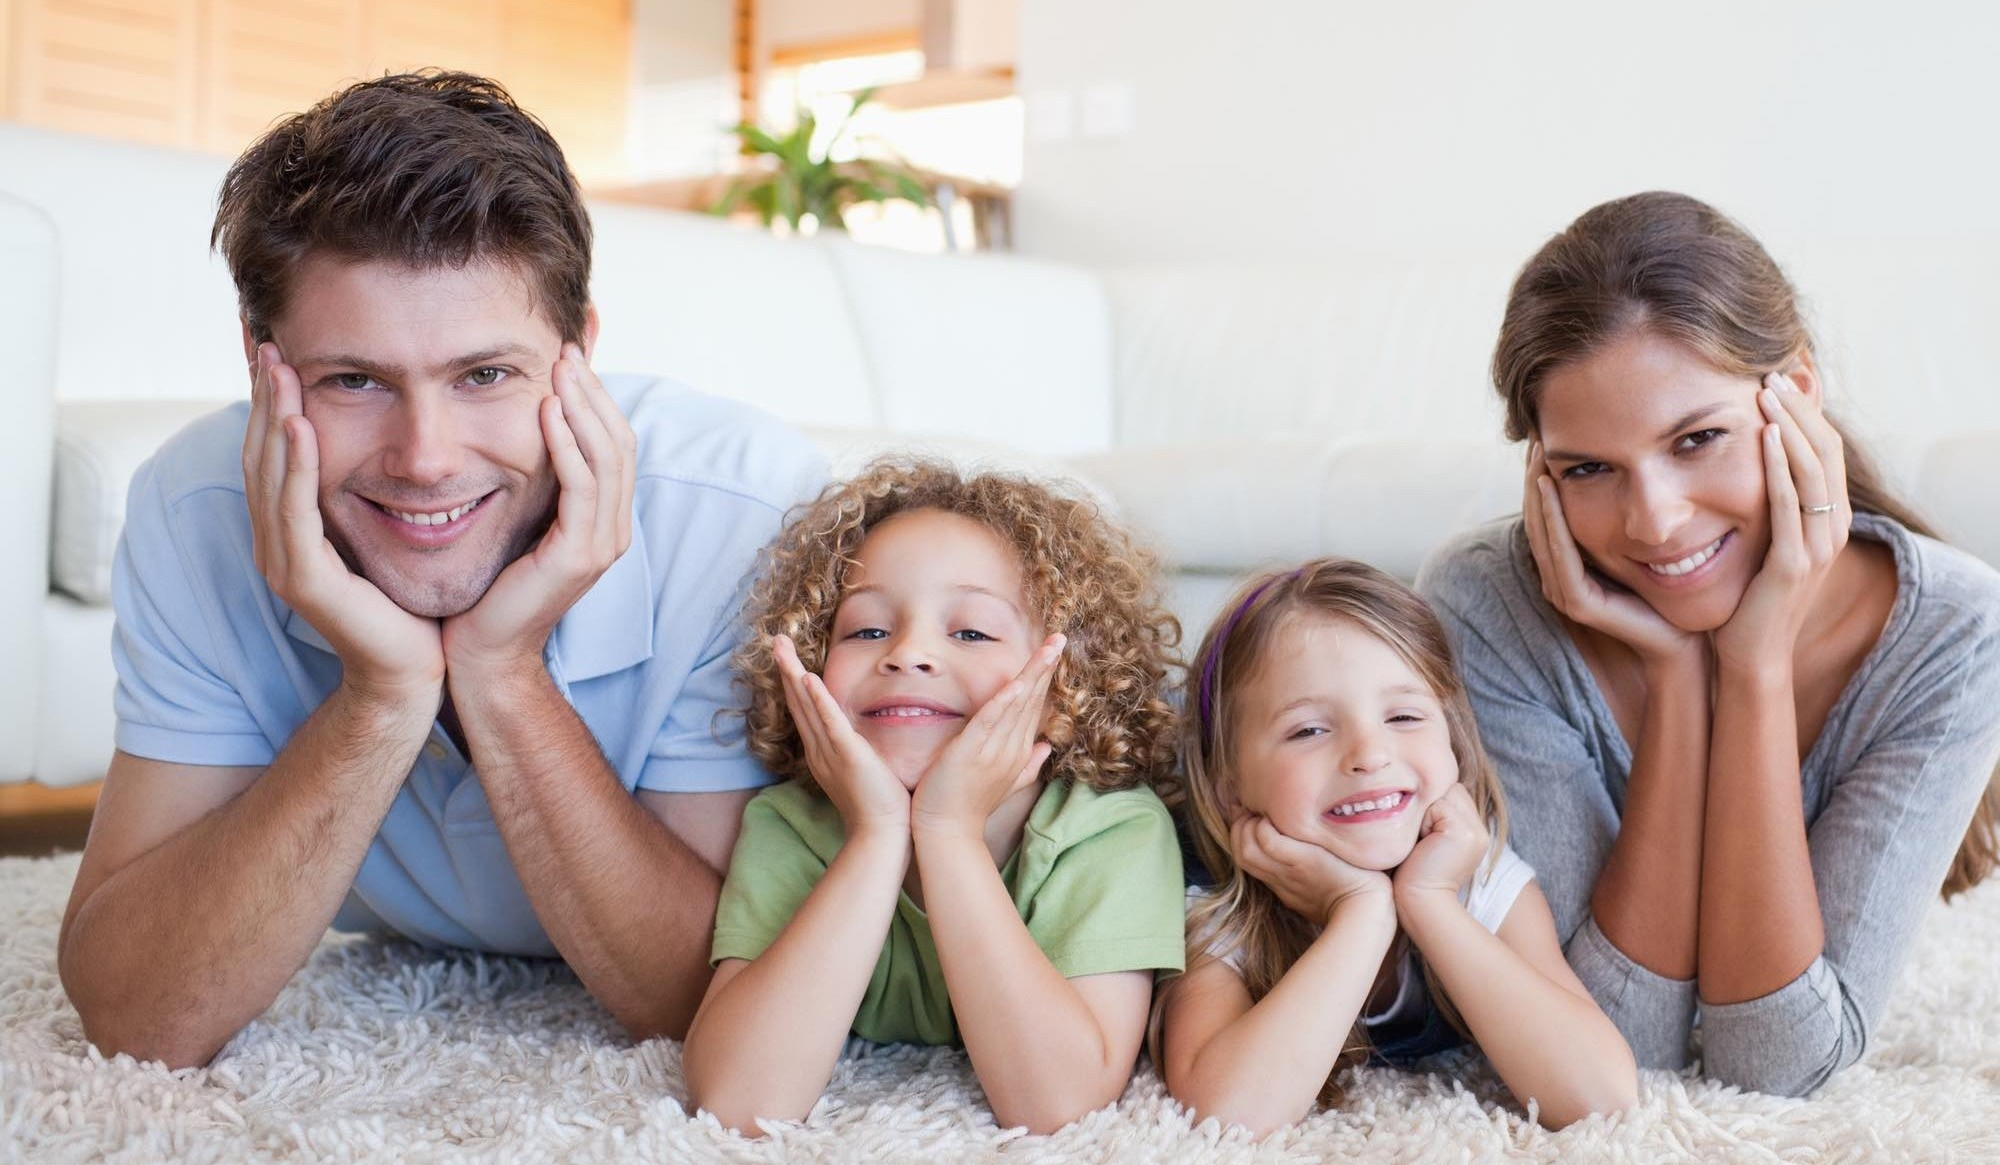 Family lying on a carpet in their living room